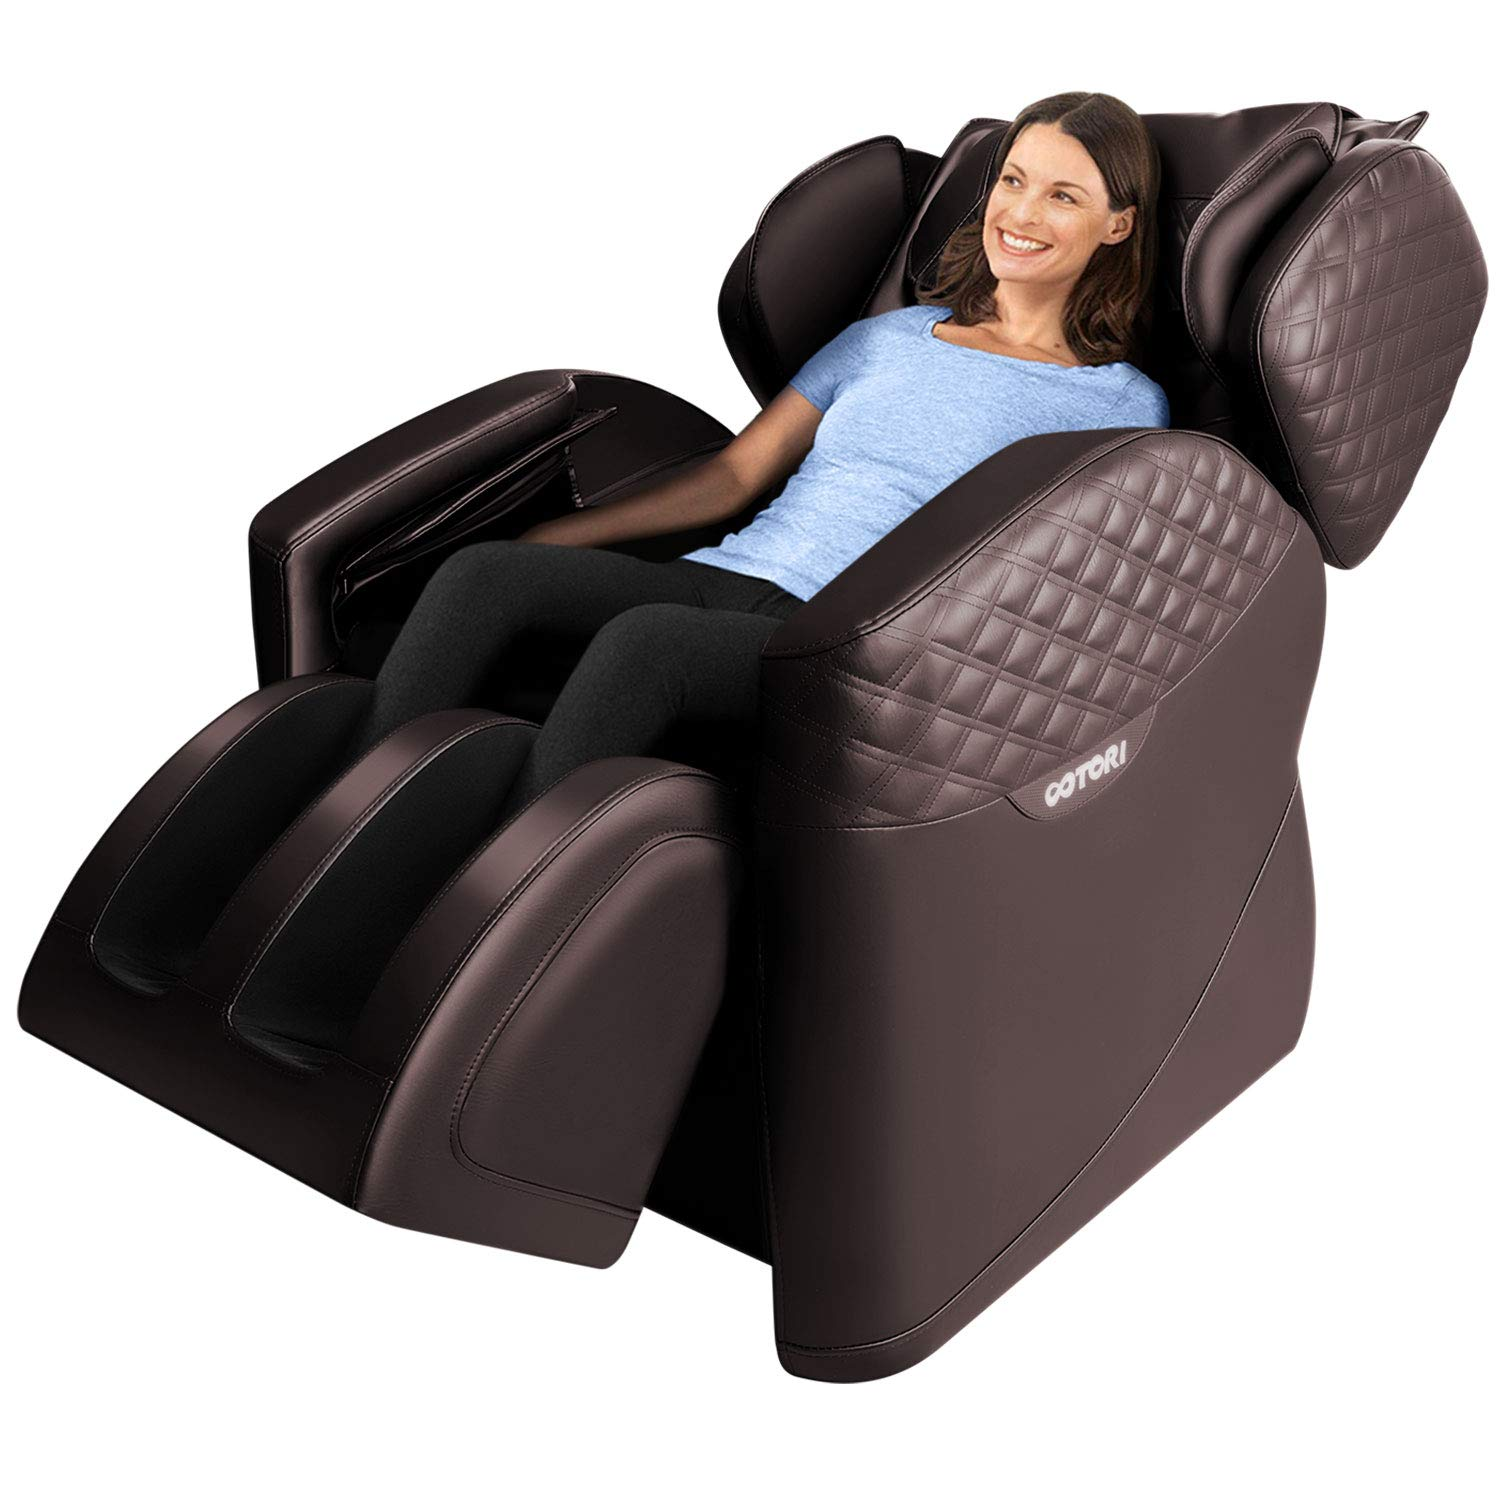 Lernonl Electric Luxurious  Chair Recliner